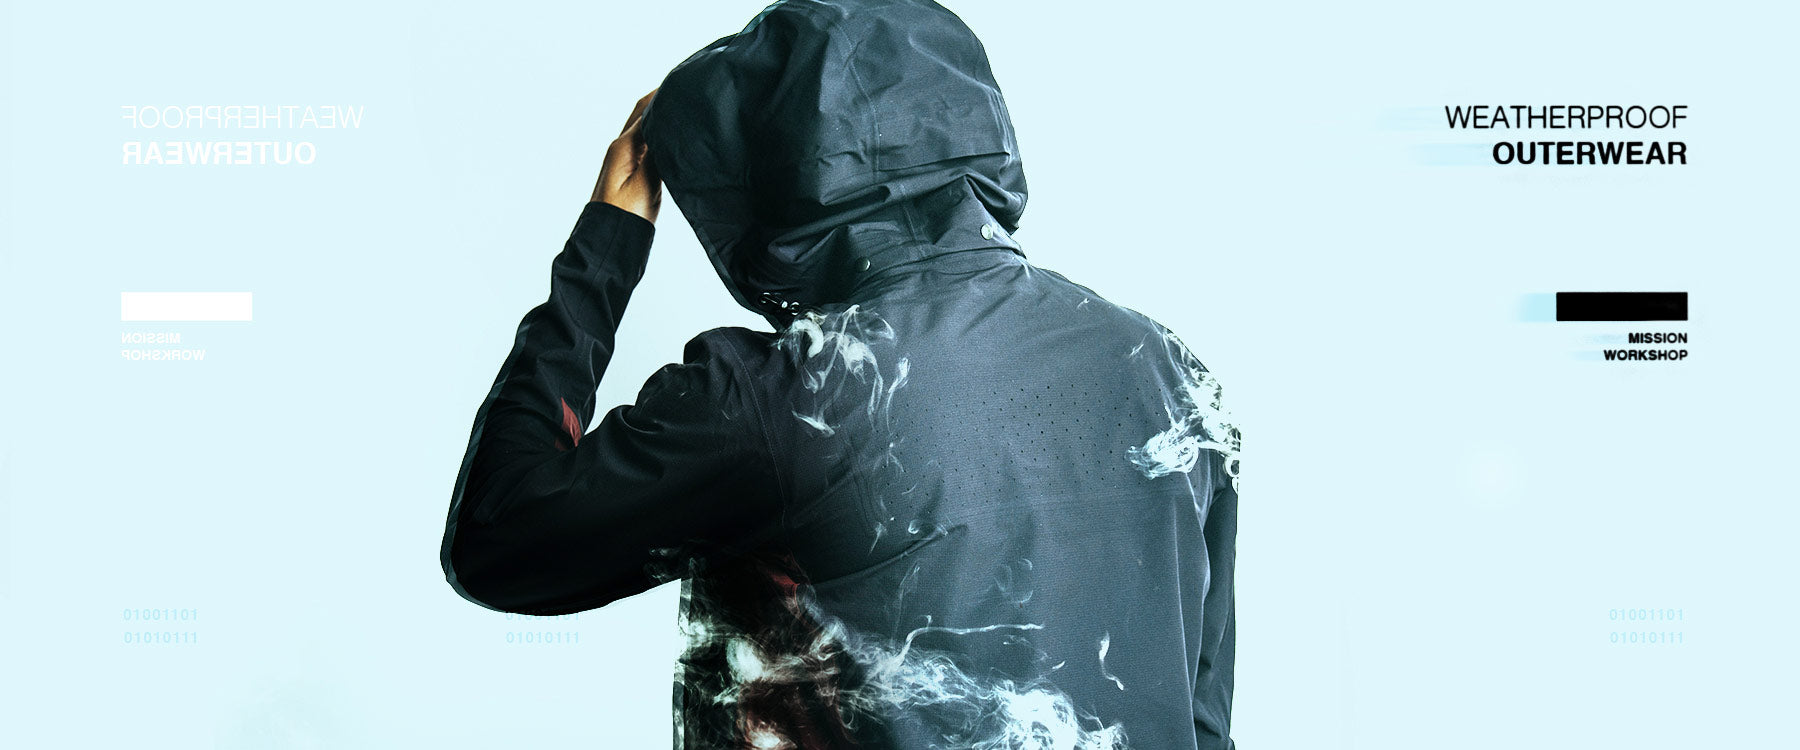 Weatherproof and Water-resistant Jackets, coats, and outerwear by Mission Workshop